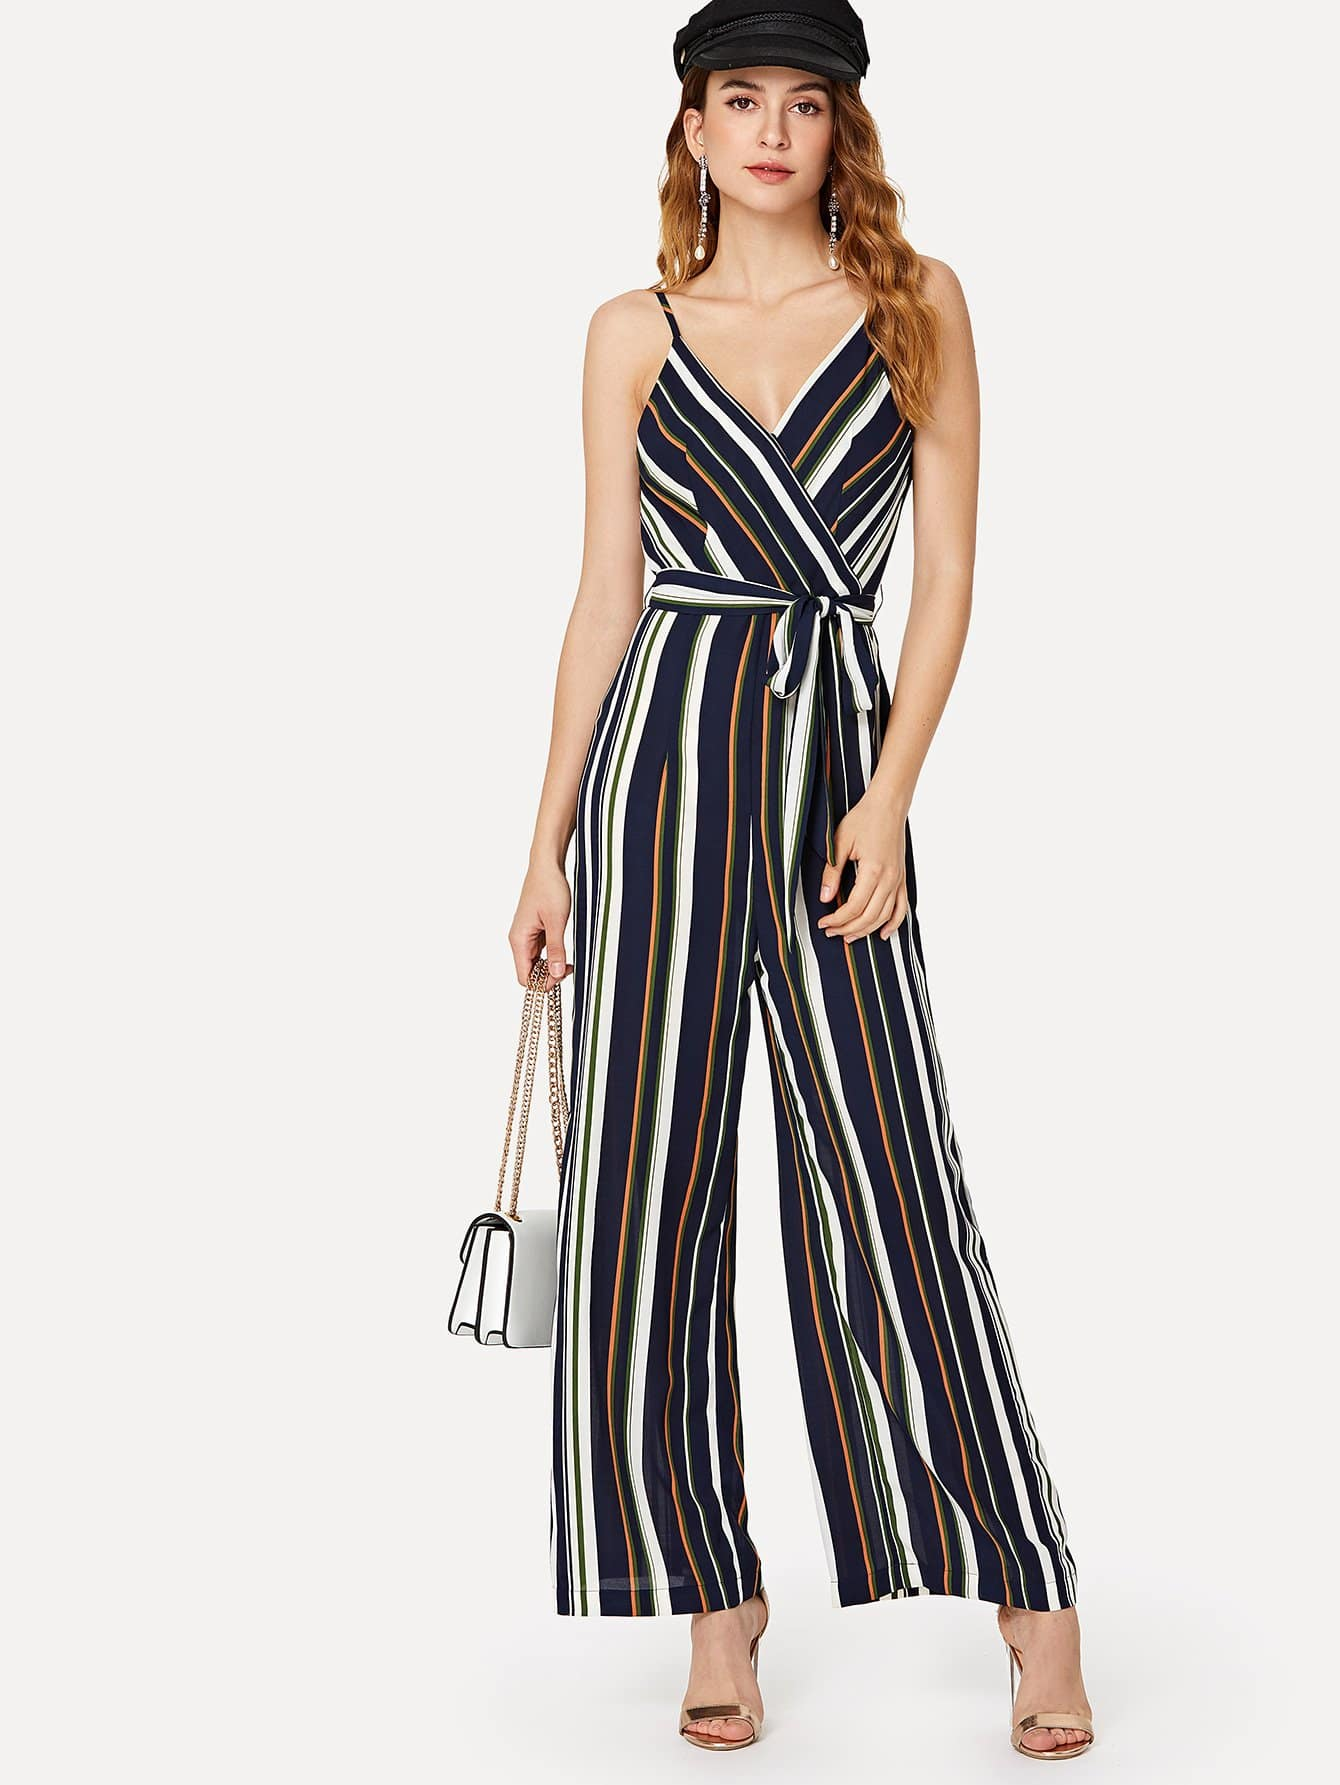 Self Belted Wide Leg Wrap Striped Cami Jumpsuit mixed print belted wrap jumpsuit